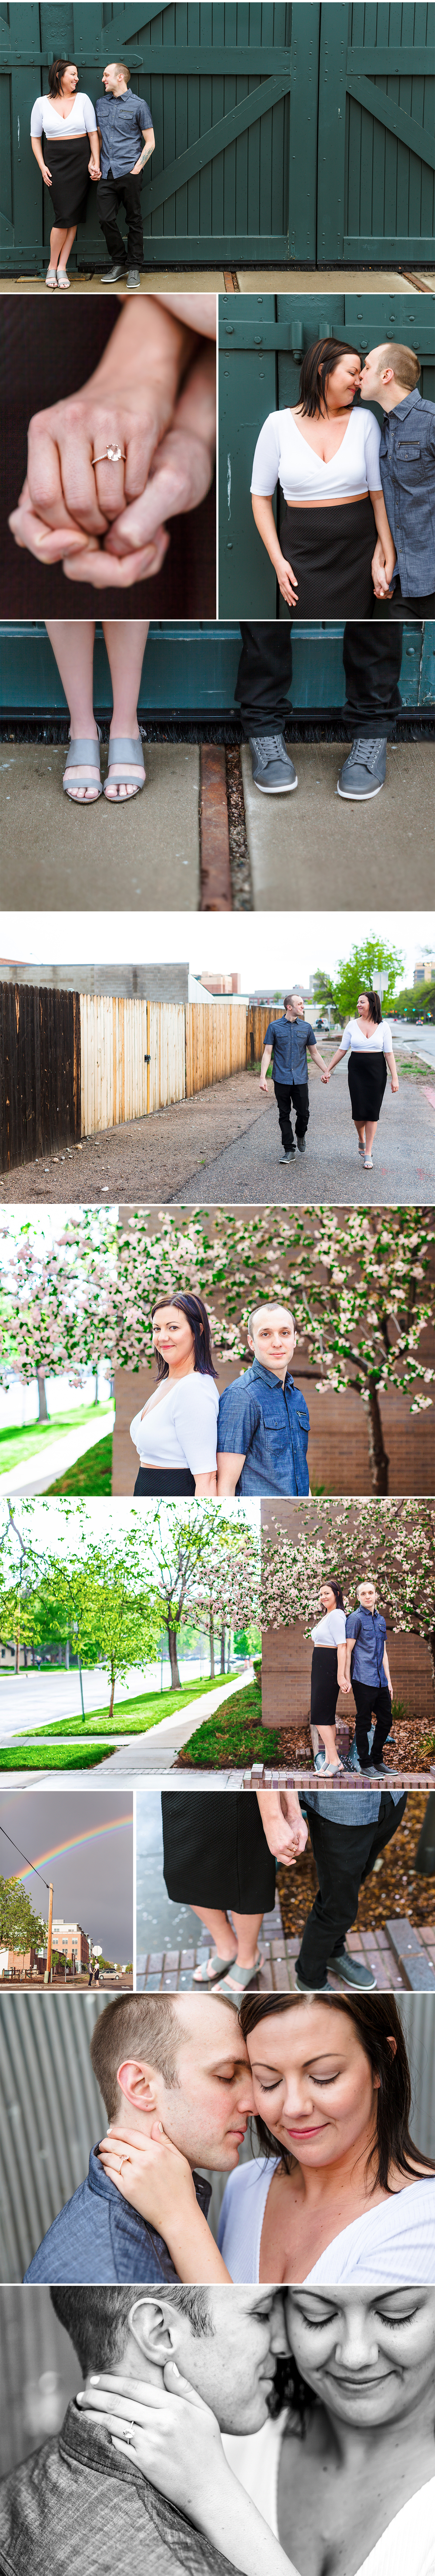 1_Fort Collins Engagement Photographer.jpg